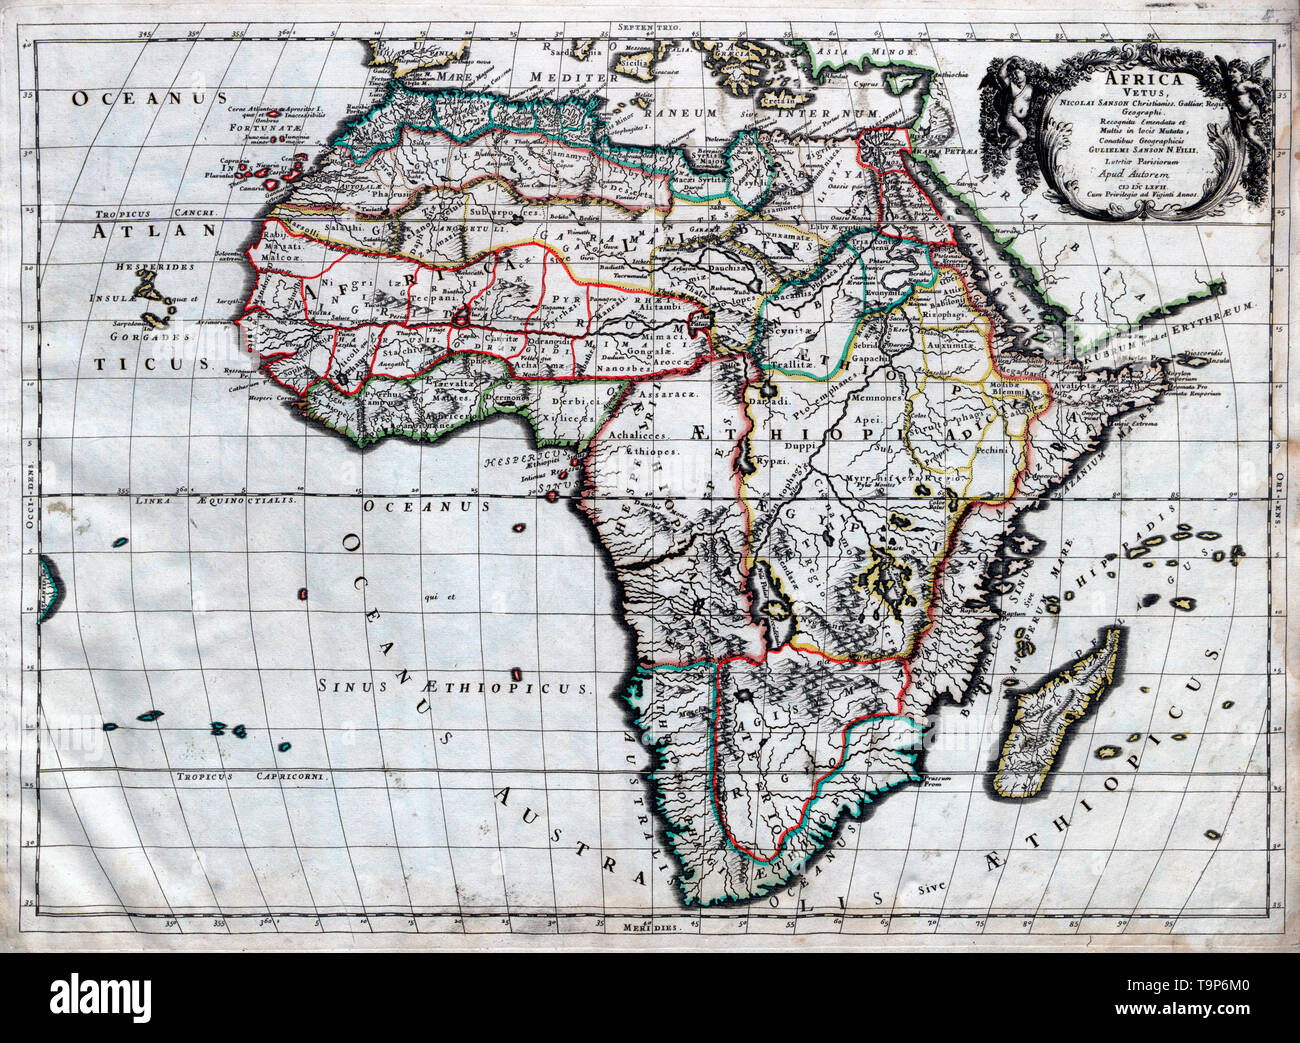 Map Of Africa 1700.Map Africa 1700 Stock Photos Map Africa 1700 Stock Images Alamy